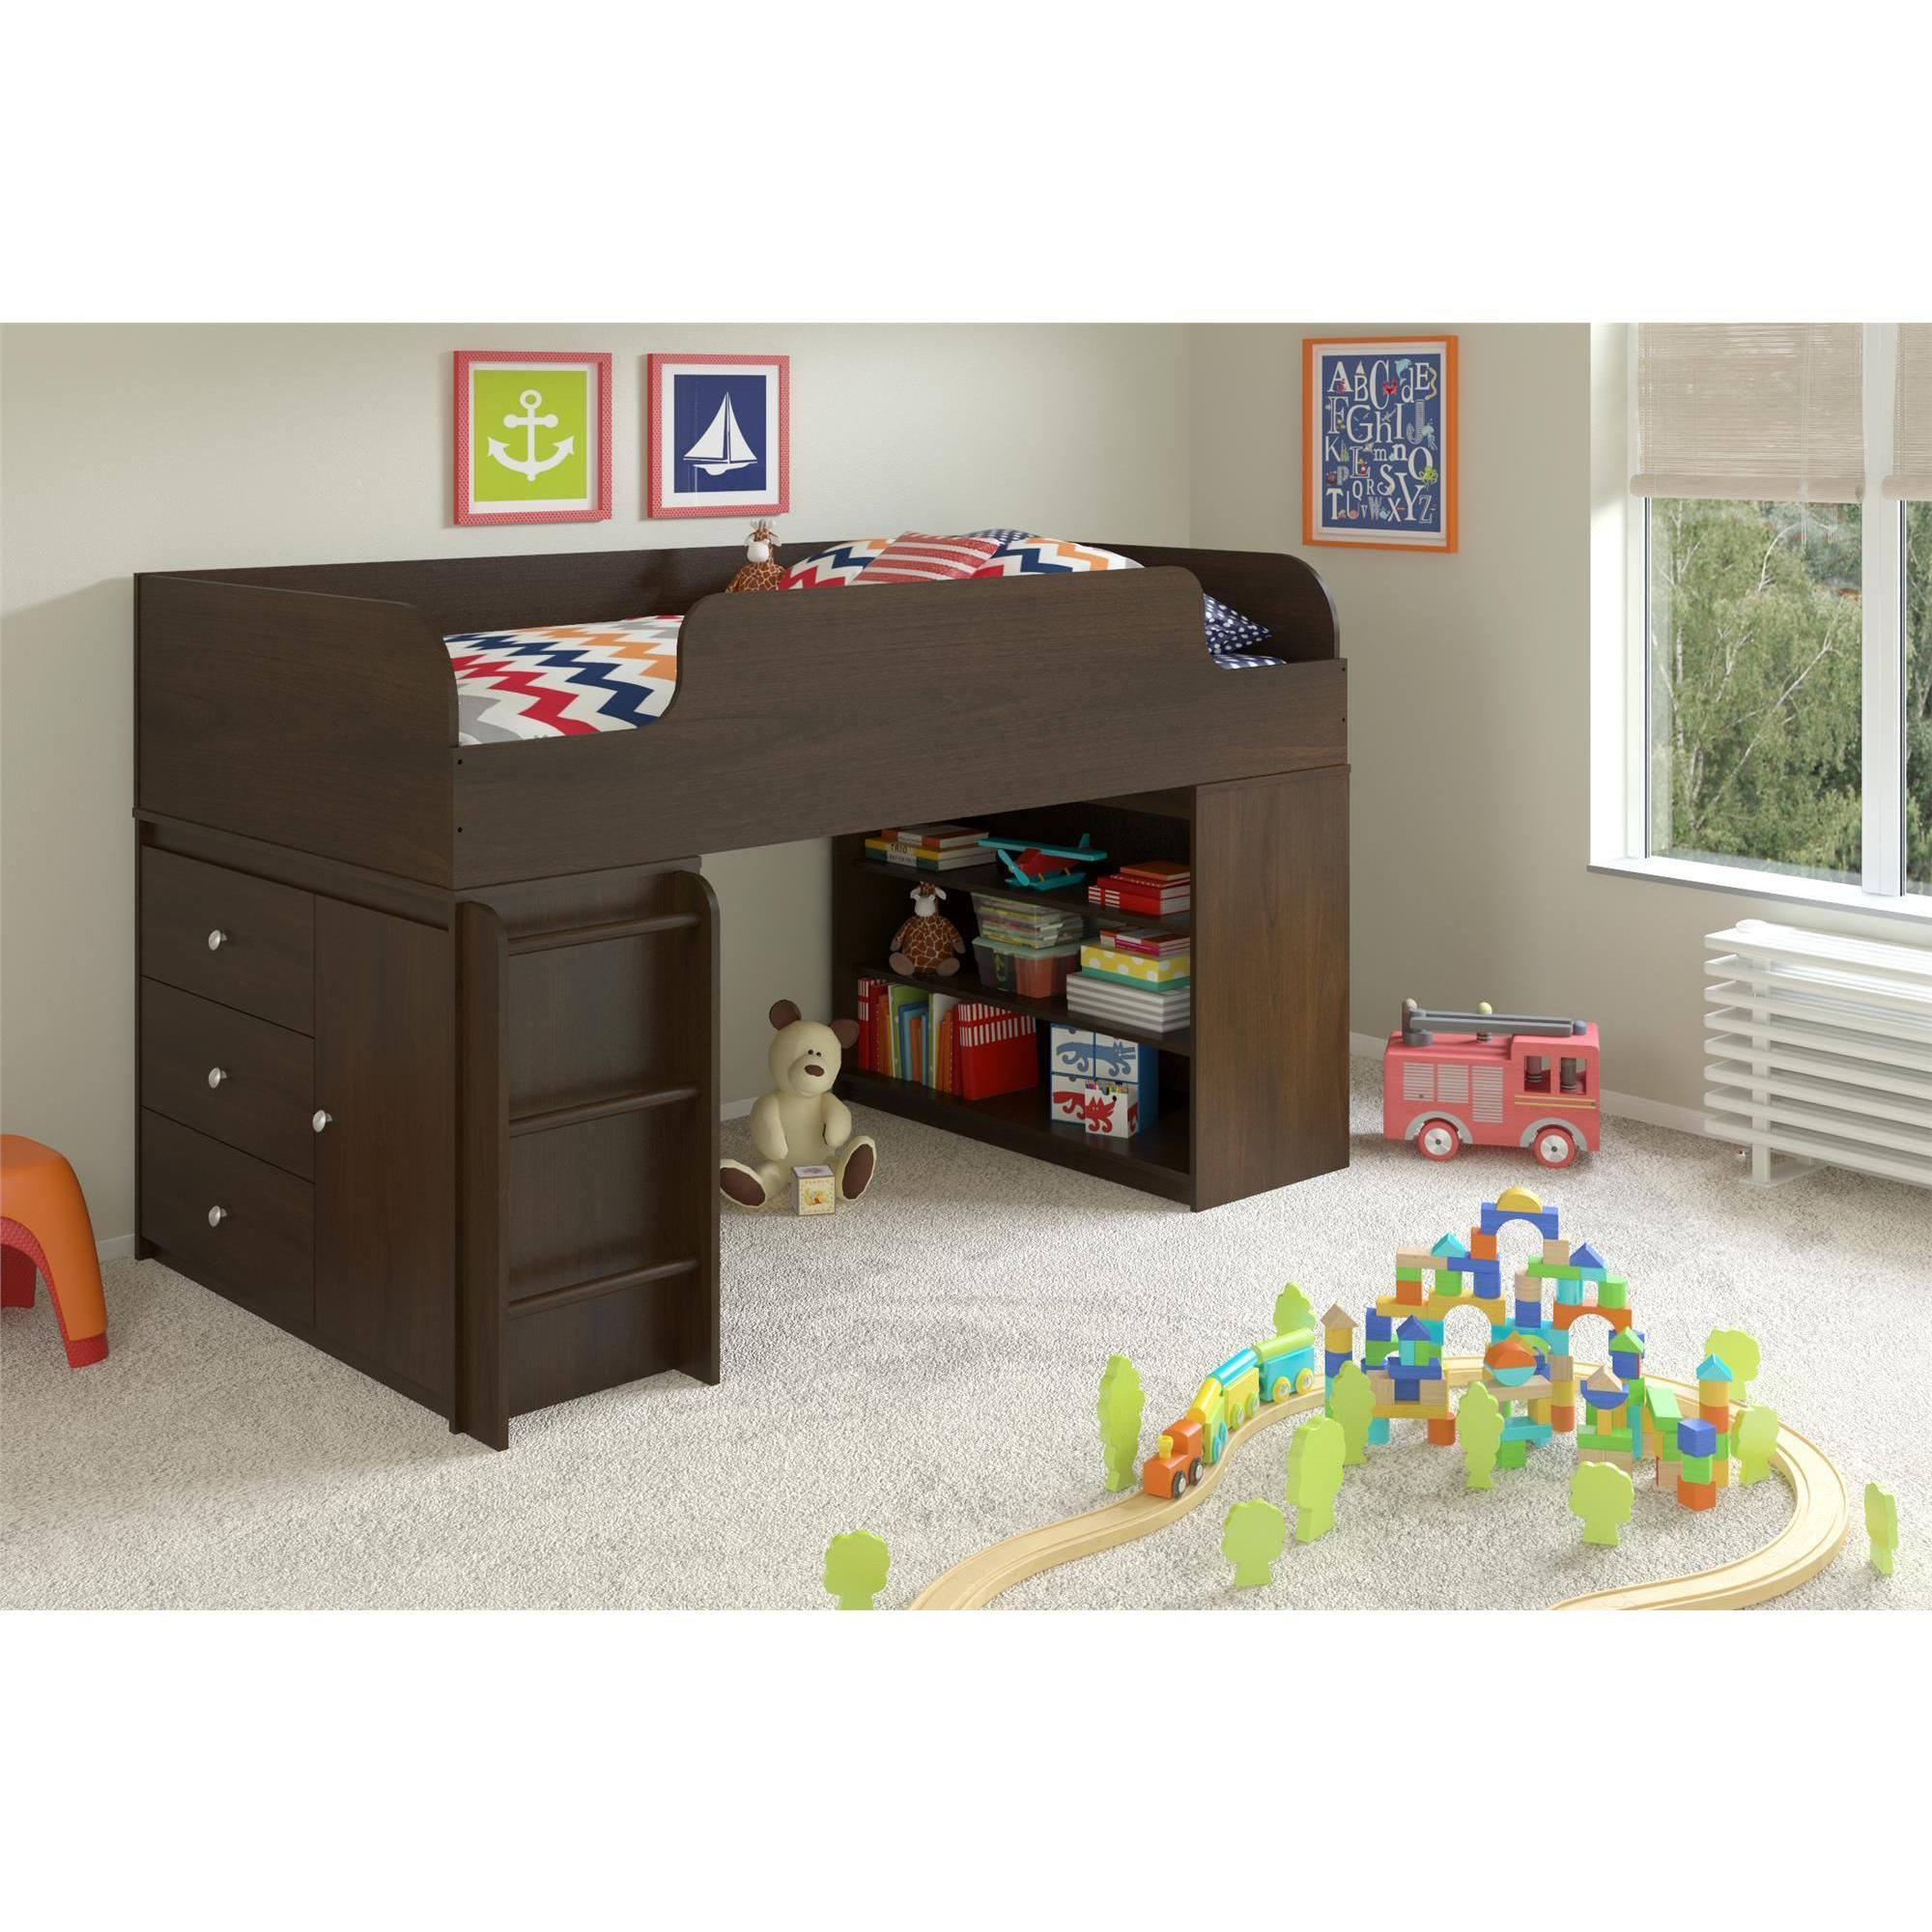 Quality built for years of enjoyment the Elements Loft Bed Bookcase and Storage